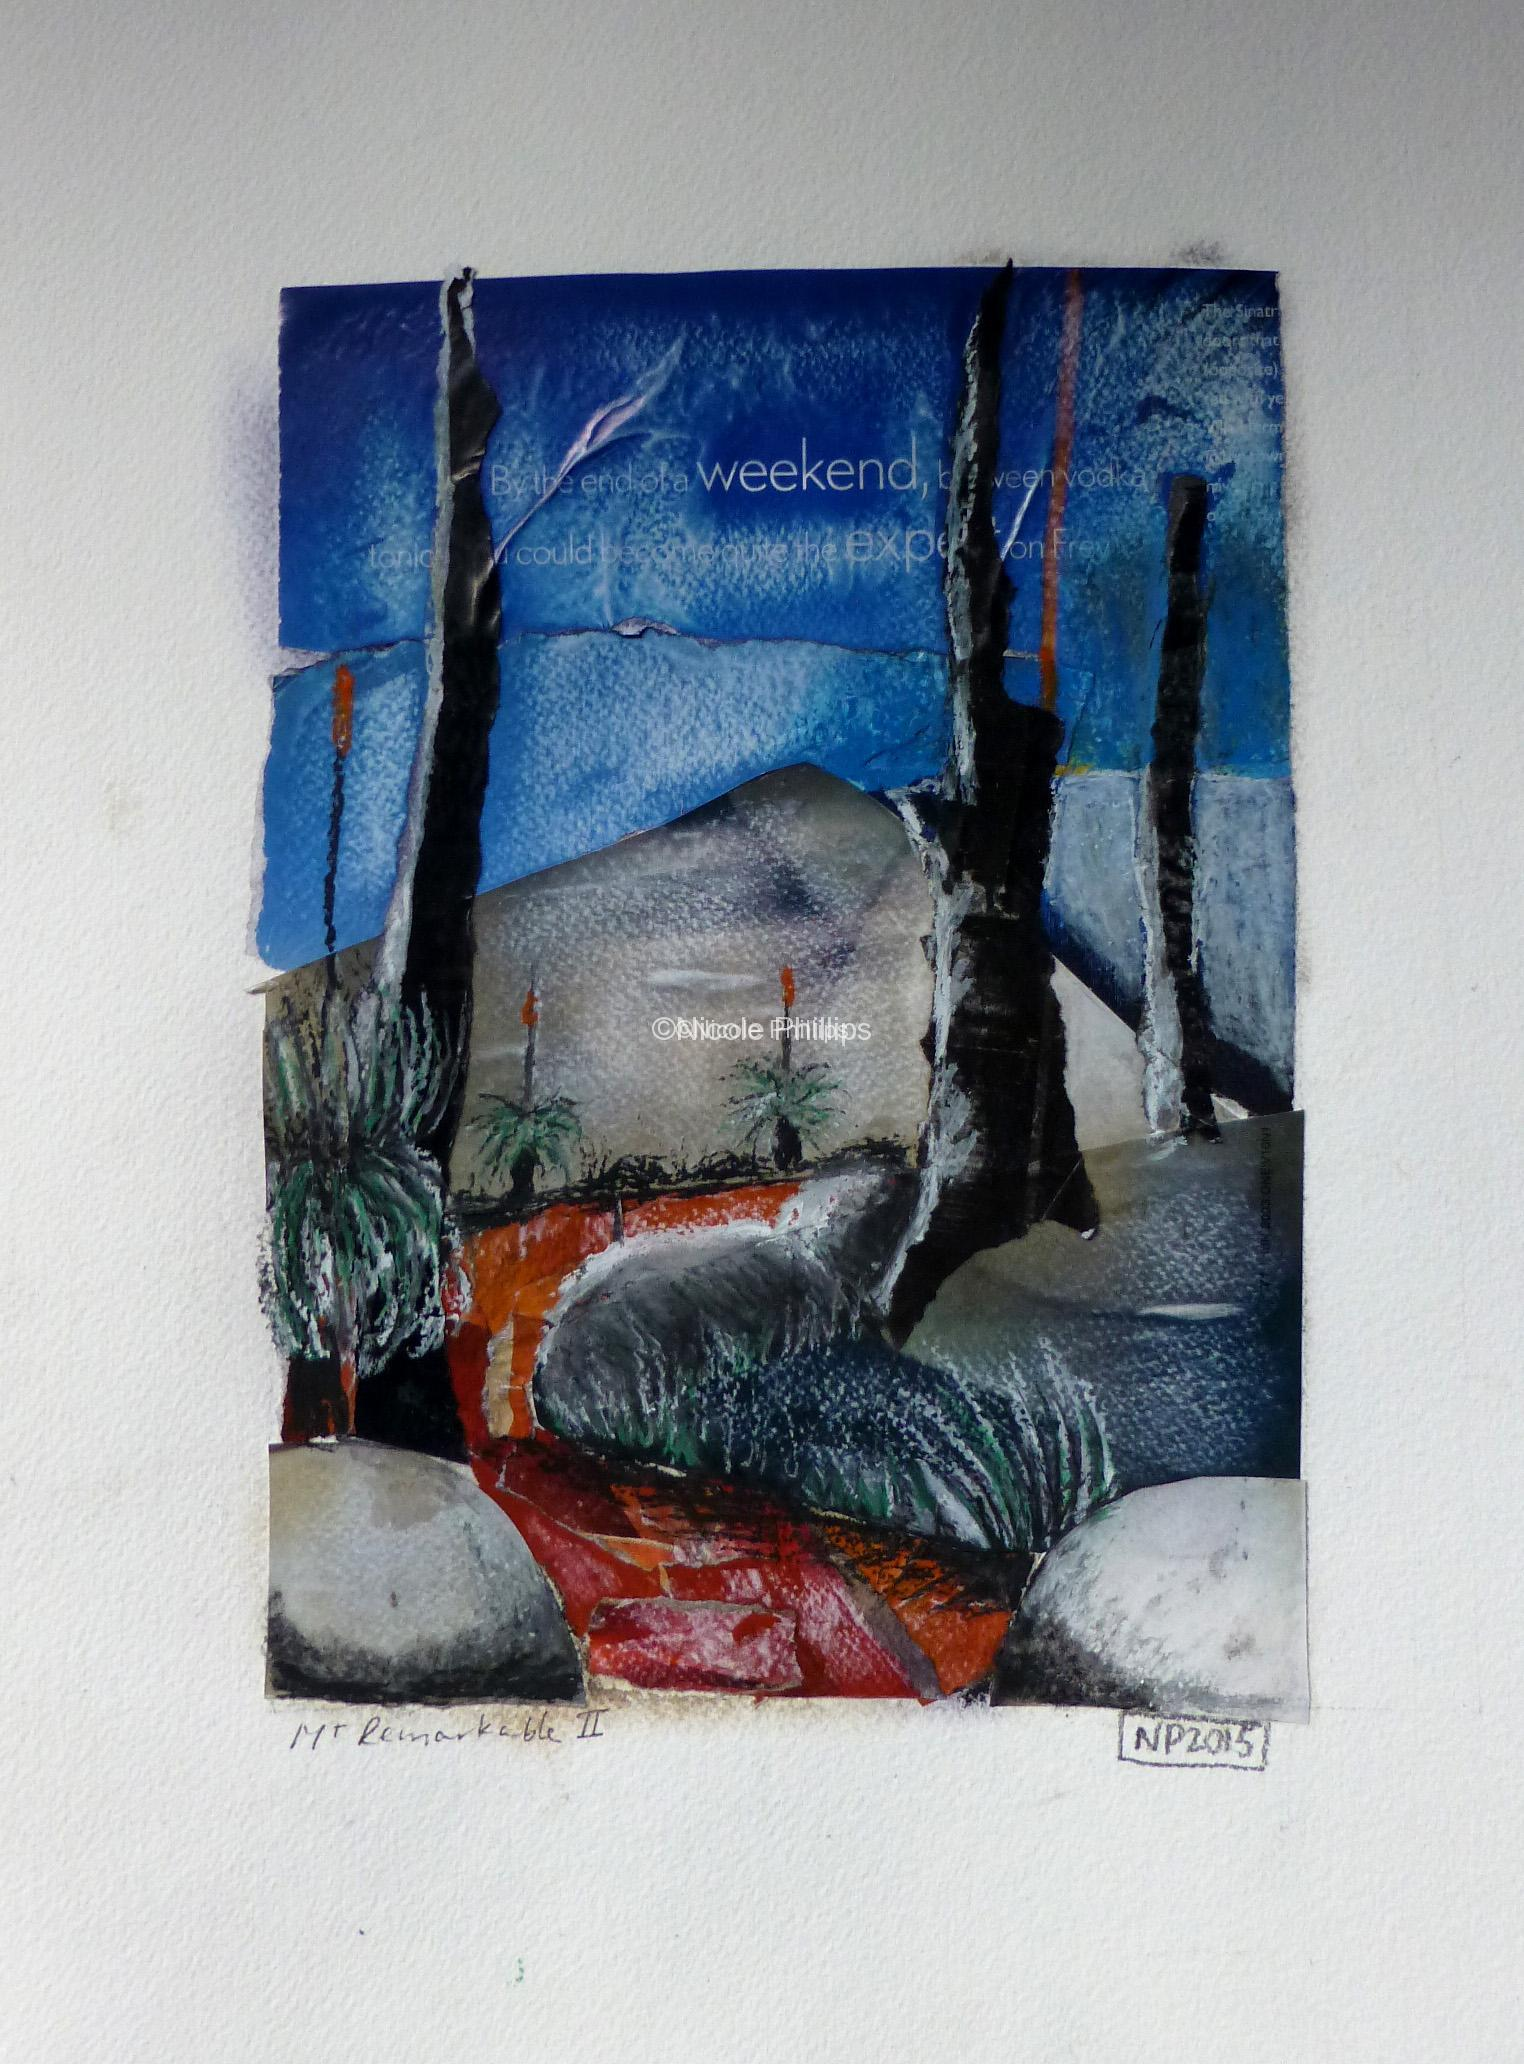 Mt Remarkable, South Australia, after fire, collage of glossy magazine paper and oil pastel